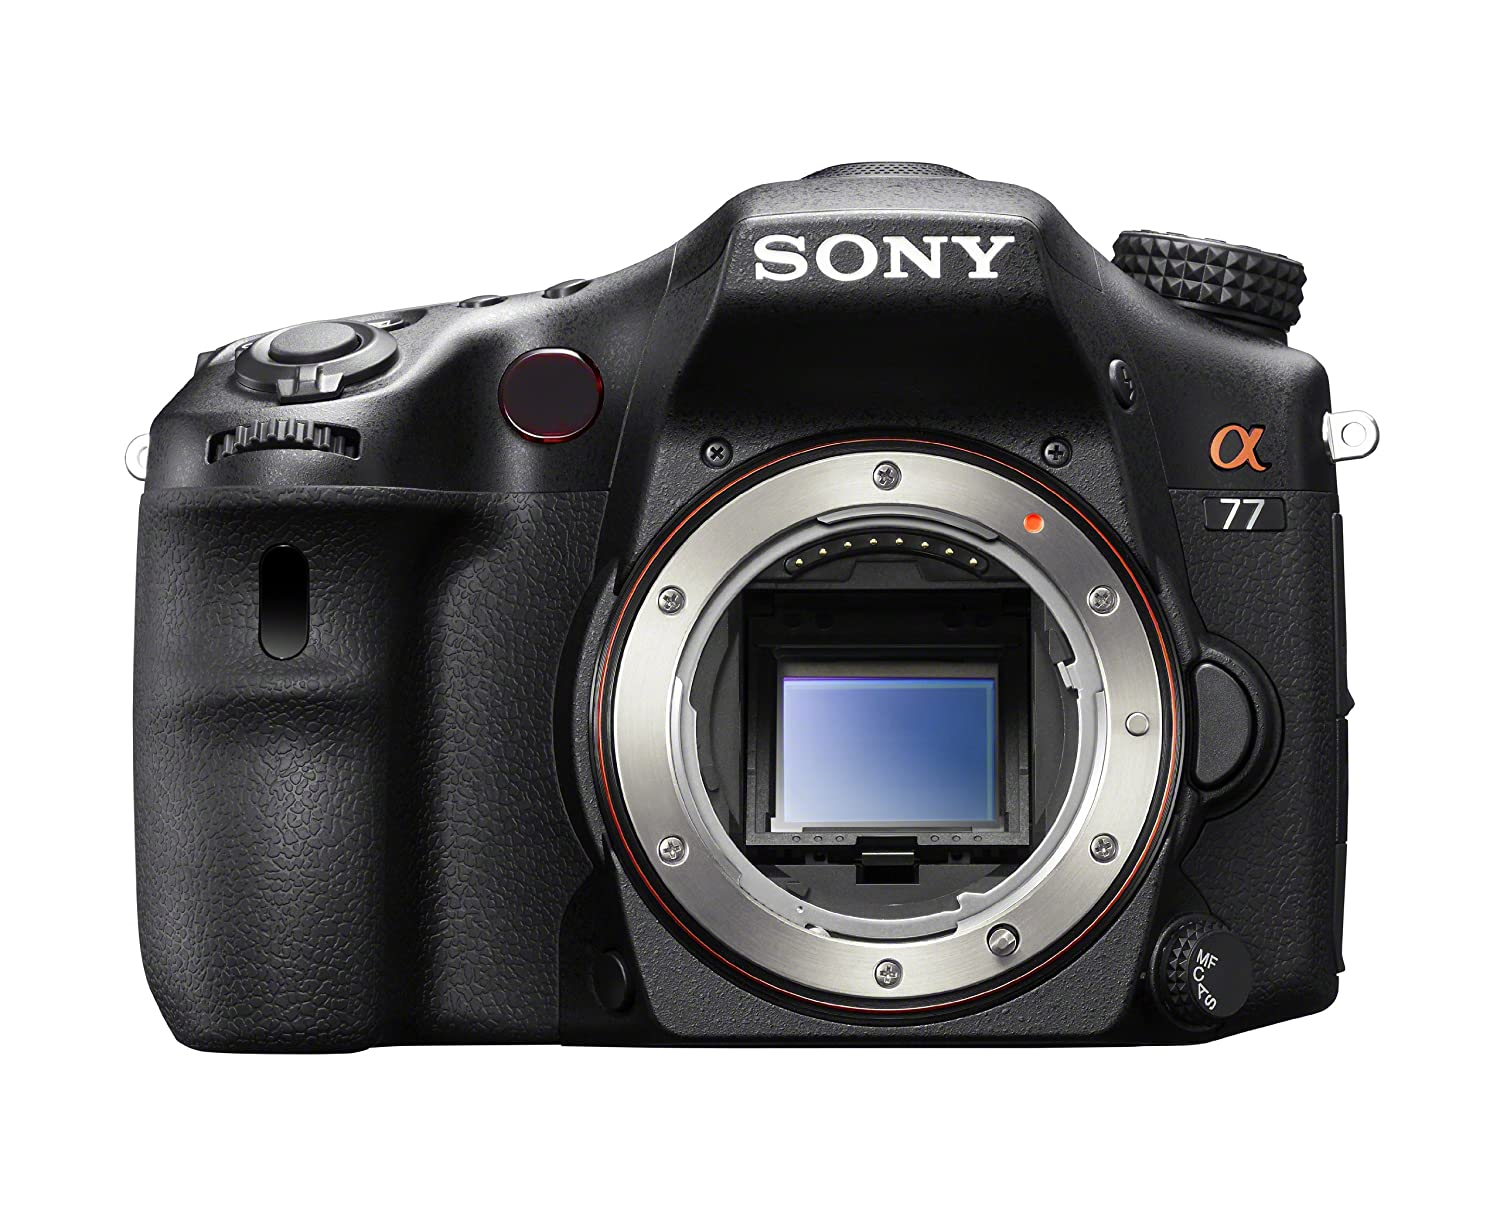 Sony SLT-A77 24.3 MP Digital SLR with Translucent Mirror Technology – Body Only (Save $200)